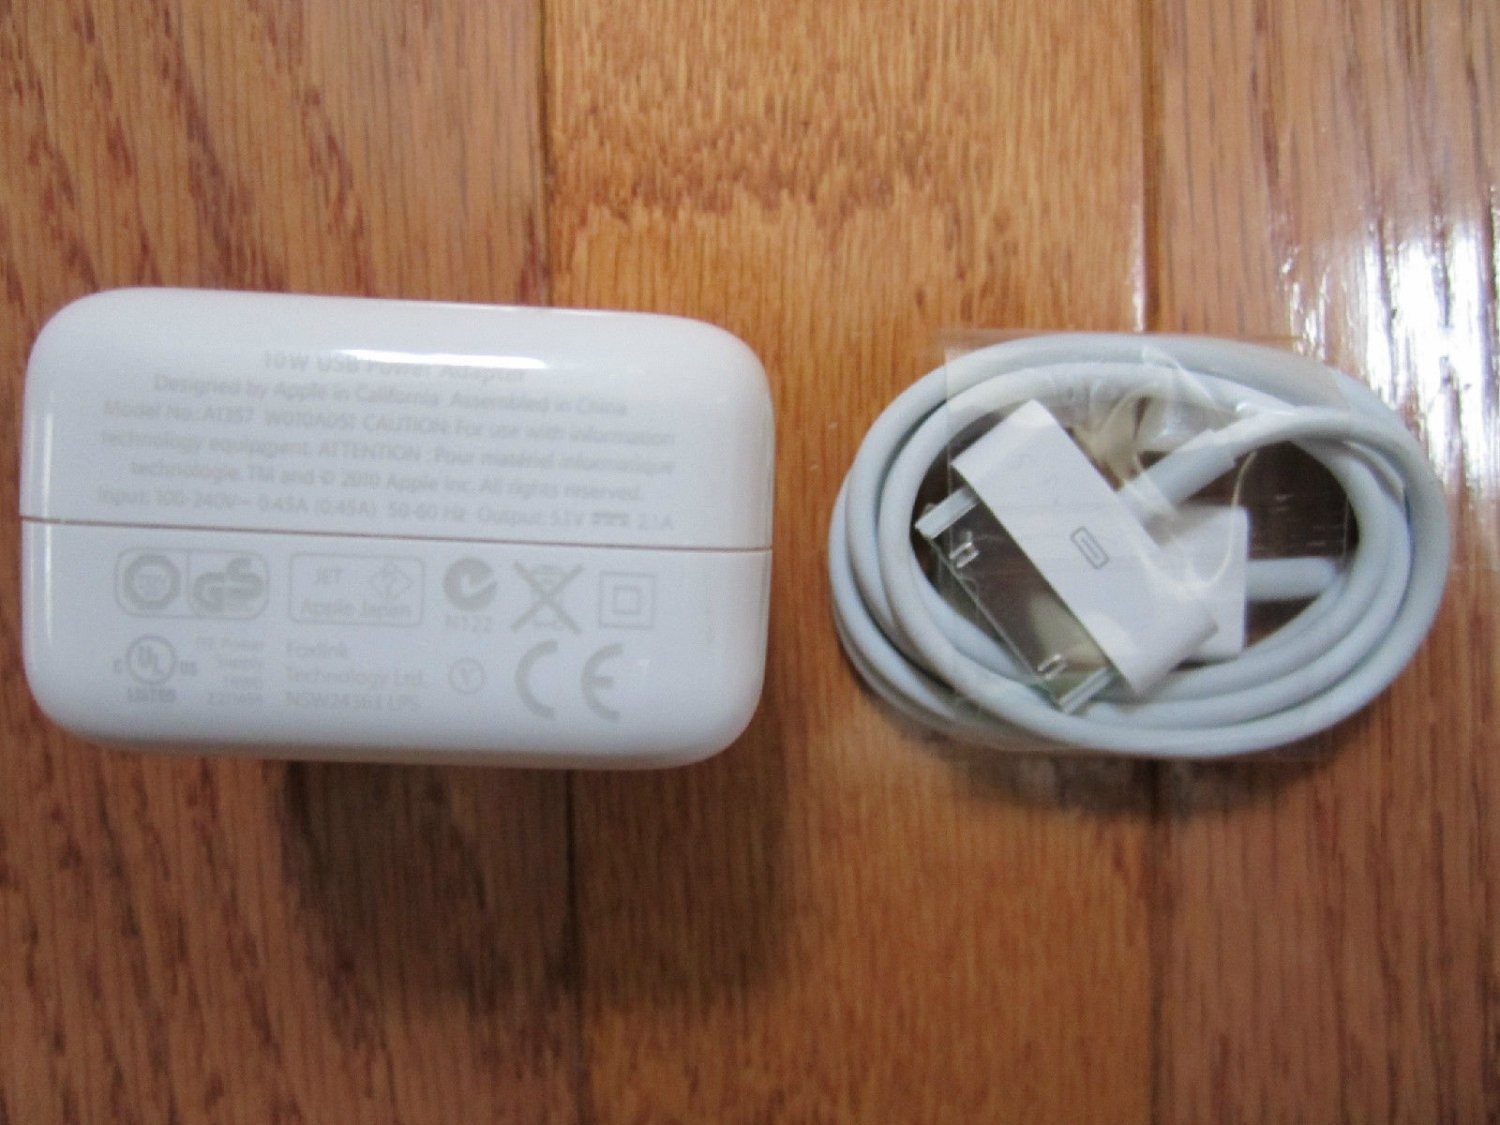 OEM GENUINE Original Apple iPad 3 Wall Charger Adapter 10W Authentic AND CABLE